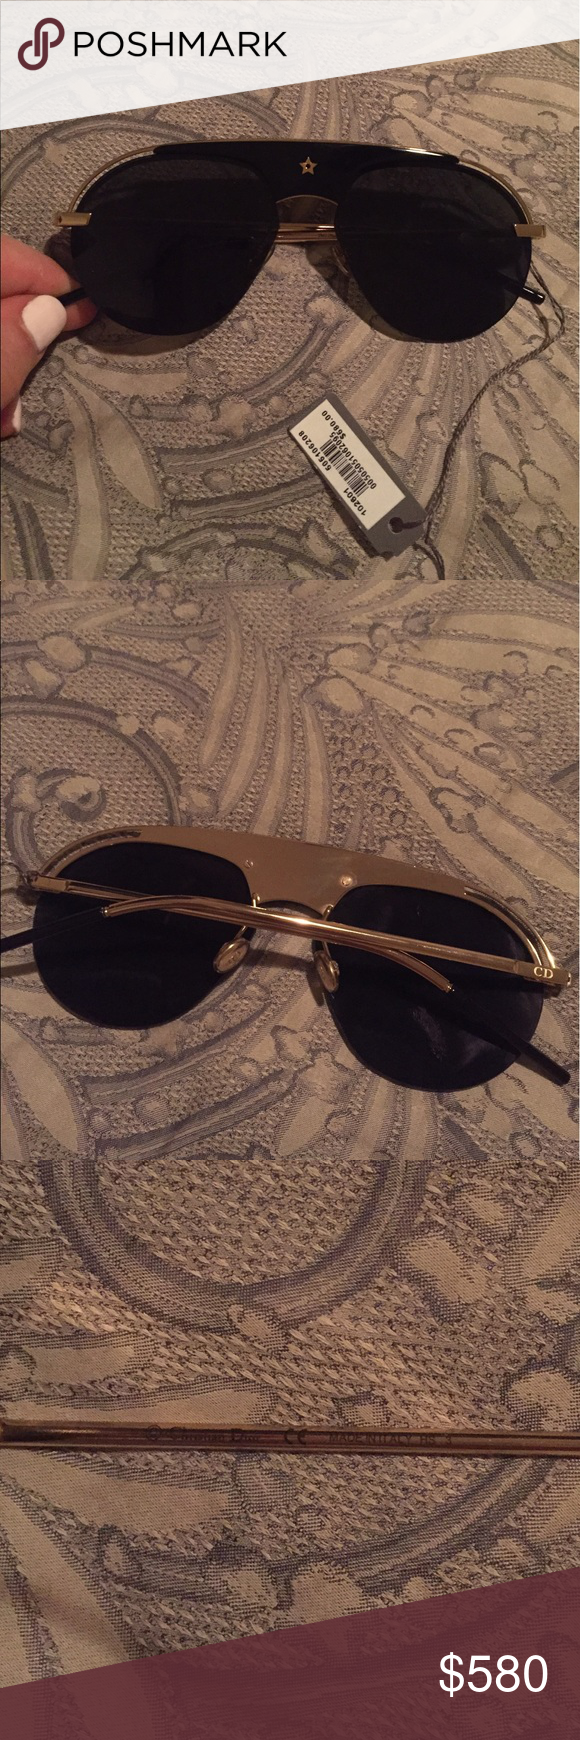 ada0aa60c1d7 Christian Dior Sunglasses Dio(r)evolution Sunglasses, Used handful of  times, like brand new, no damage, made in Italy, Christian Dior Accessories  Sunglasses